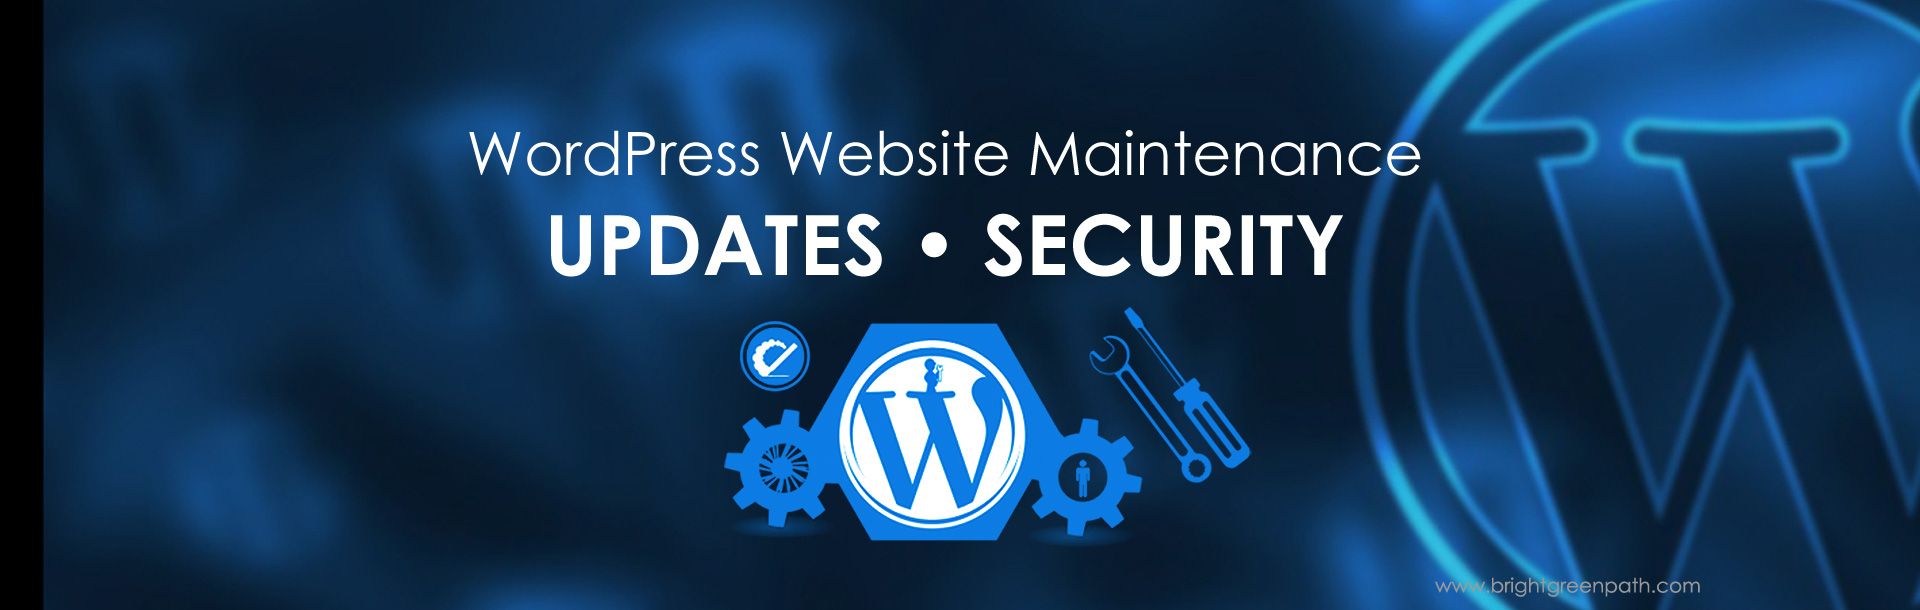 Florida WordPress Website Maintenance Services